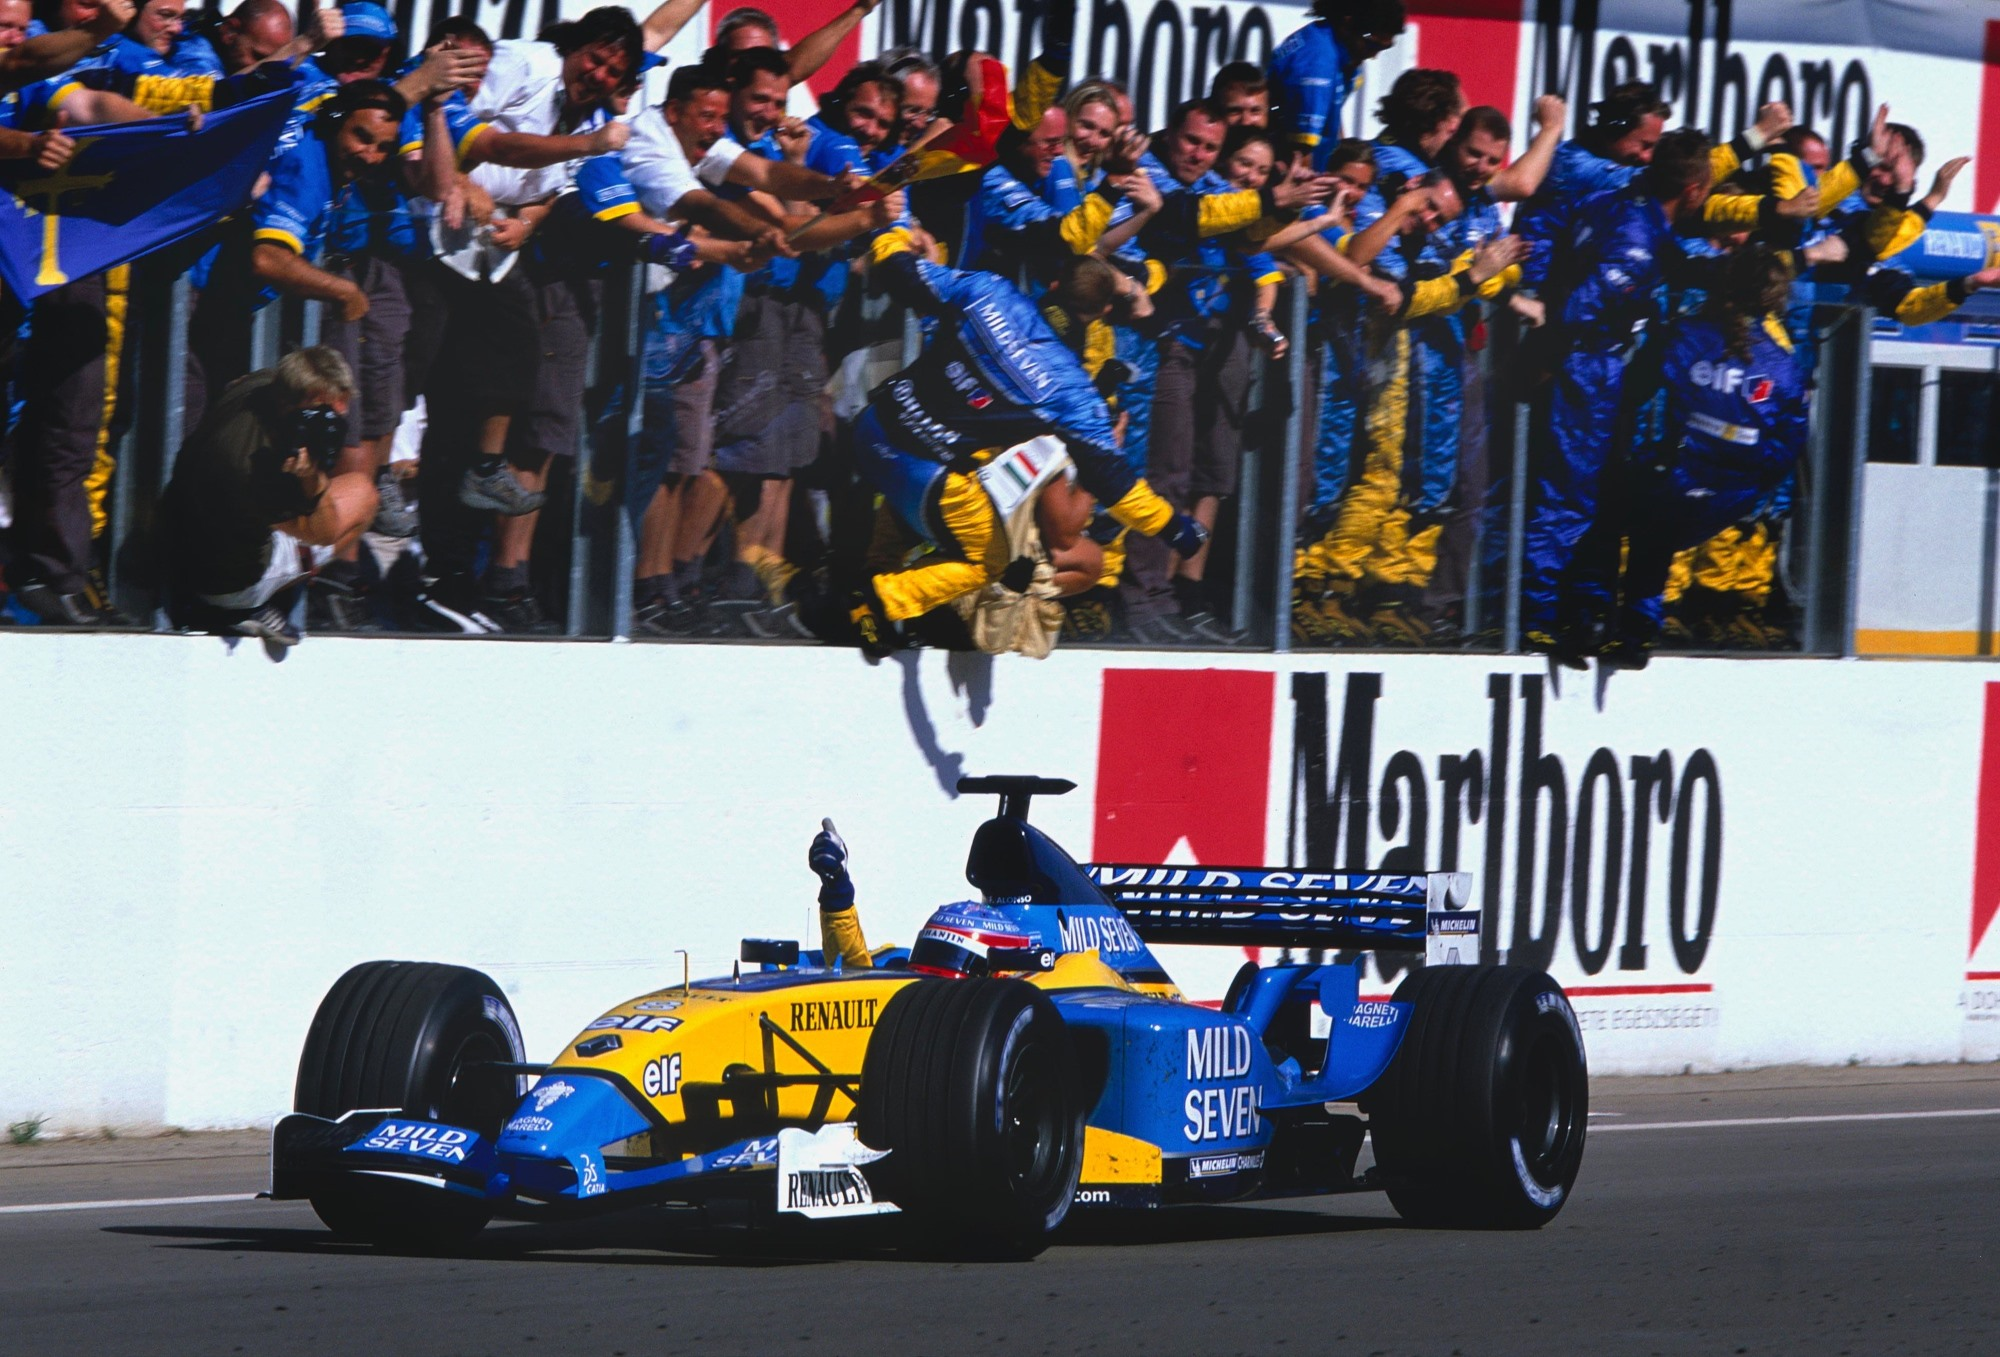 fernando-alonso-renault-r23-first-win-hungary-gp-hungaroring-f1-2003-foto-francef1